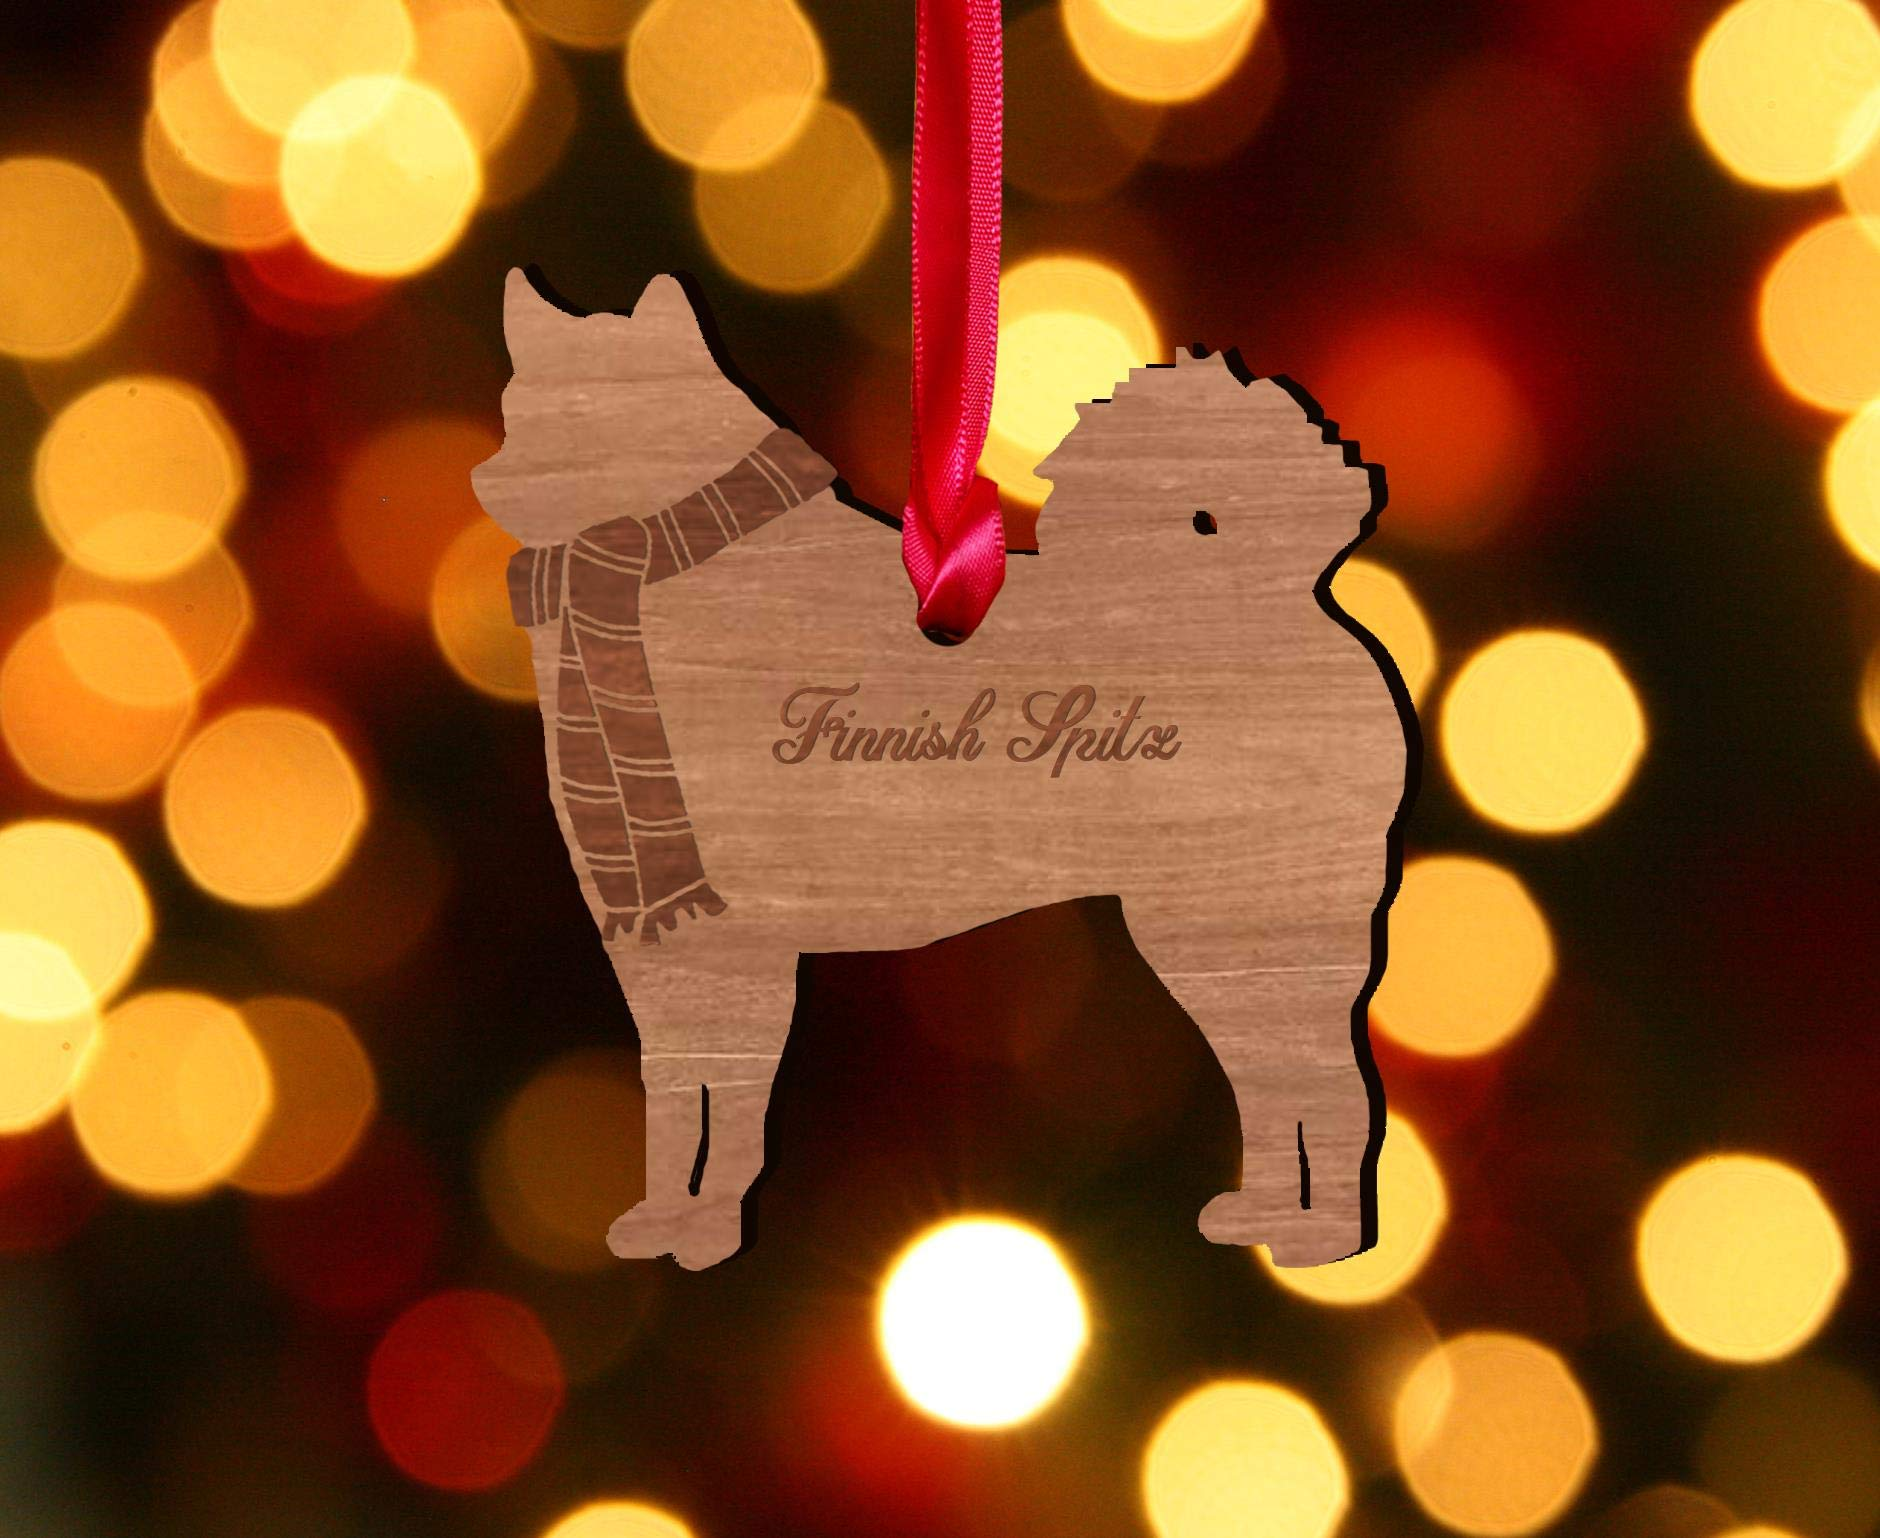 My Pretty Little Gifts Wooden Dog Decoration: Finnish Spitz